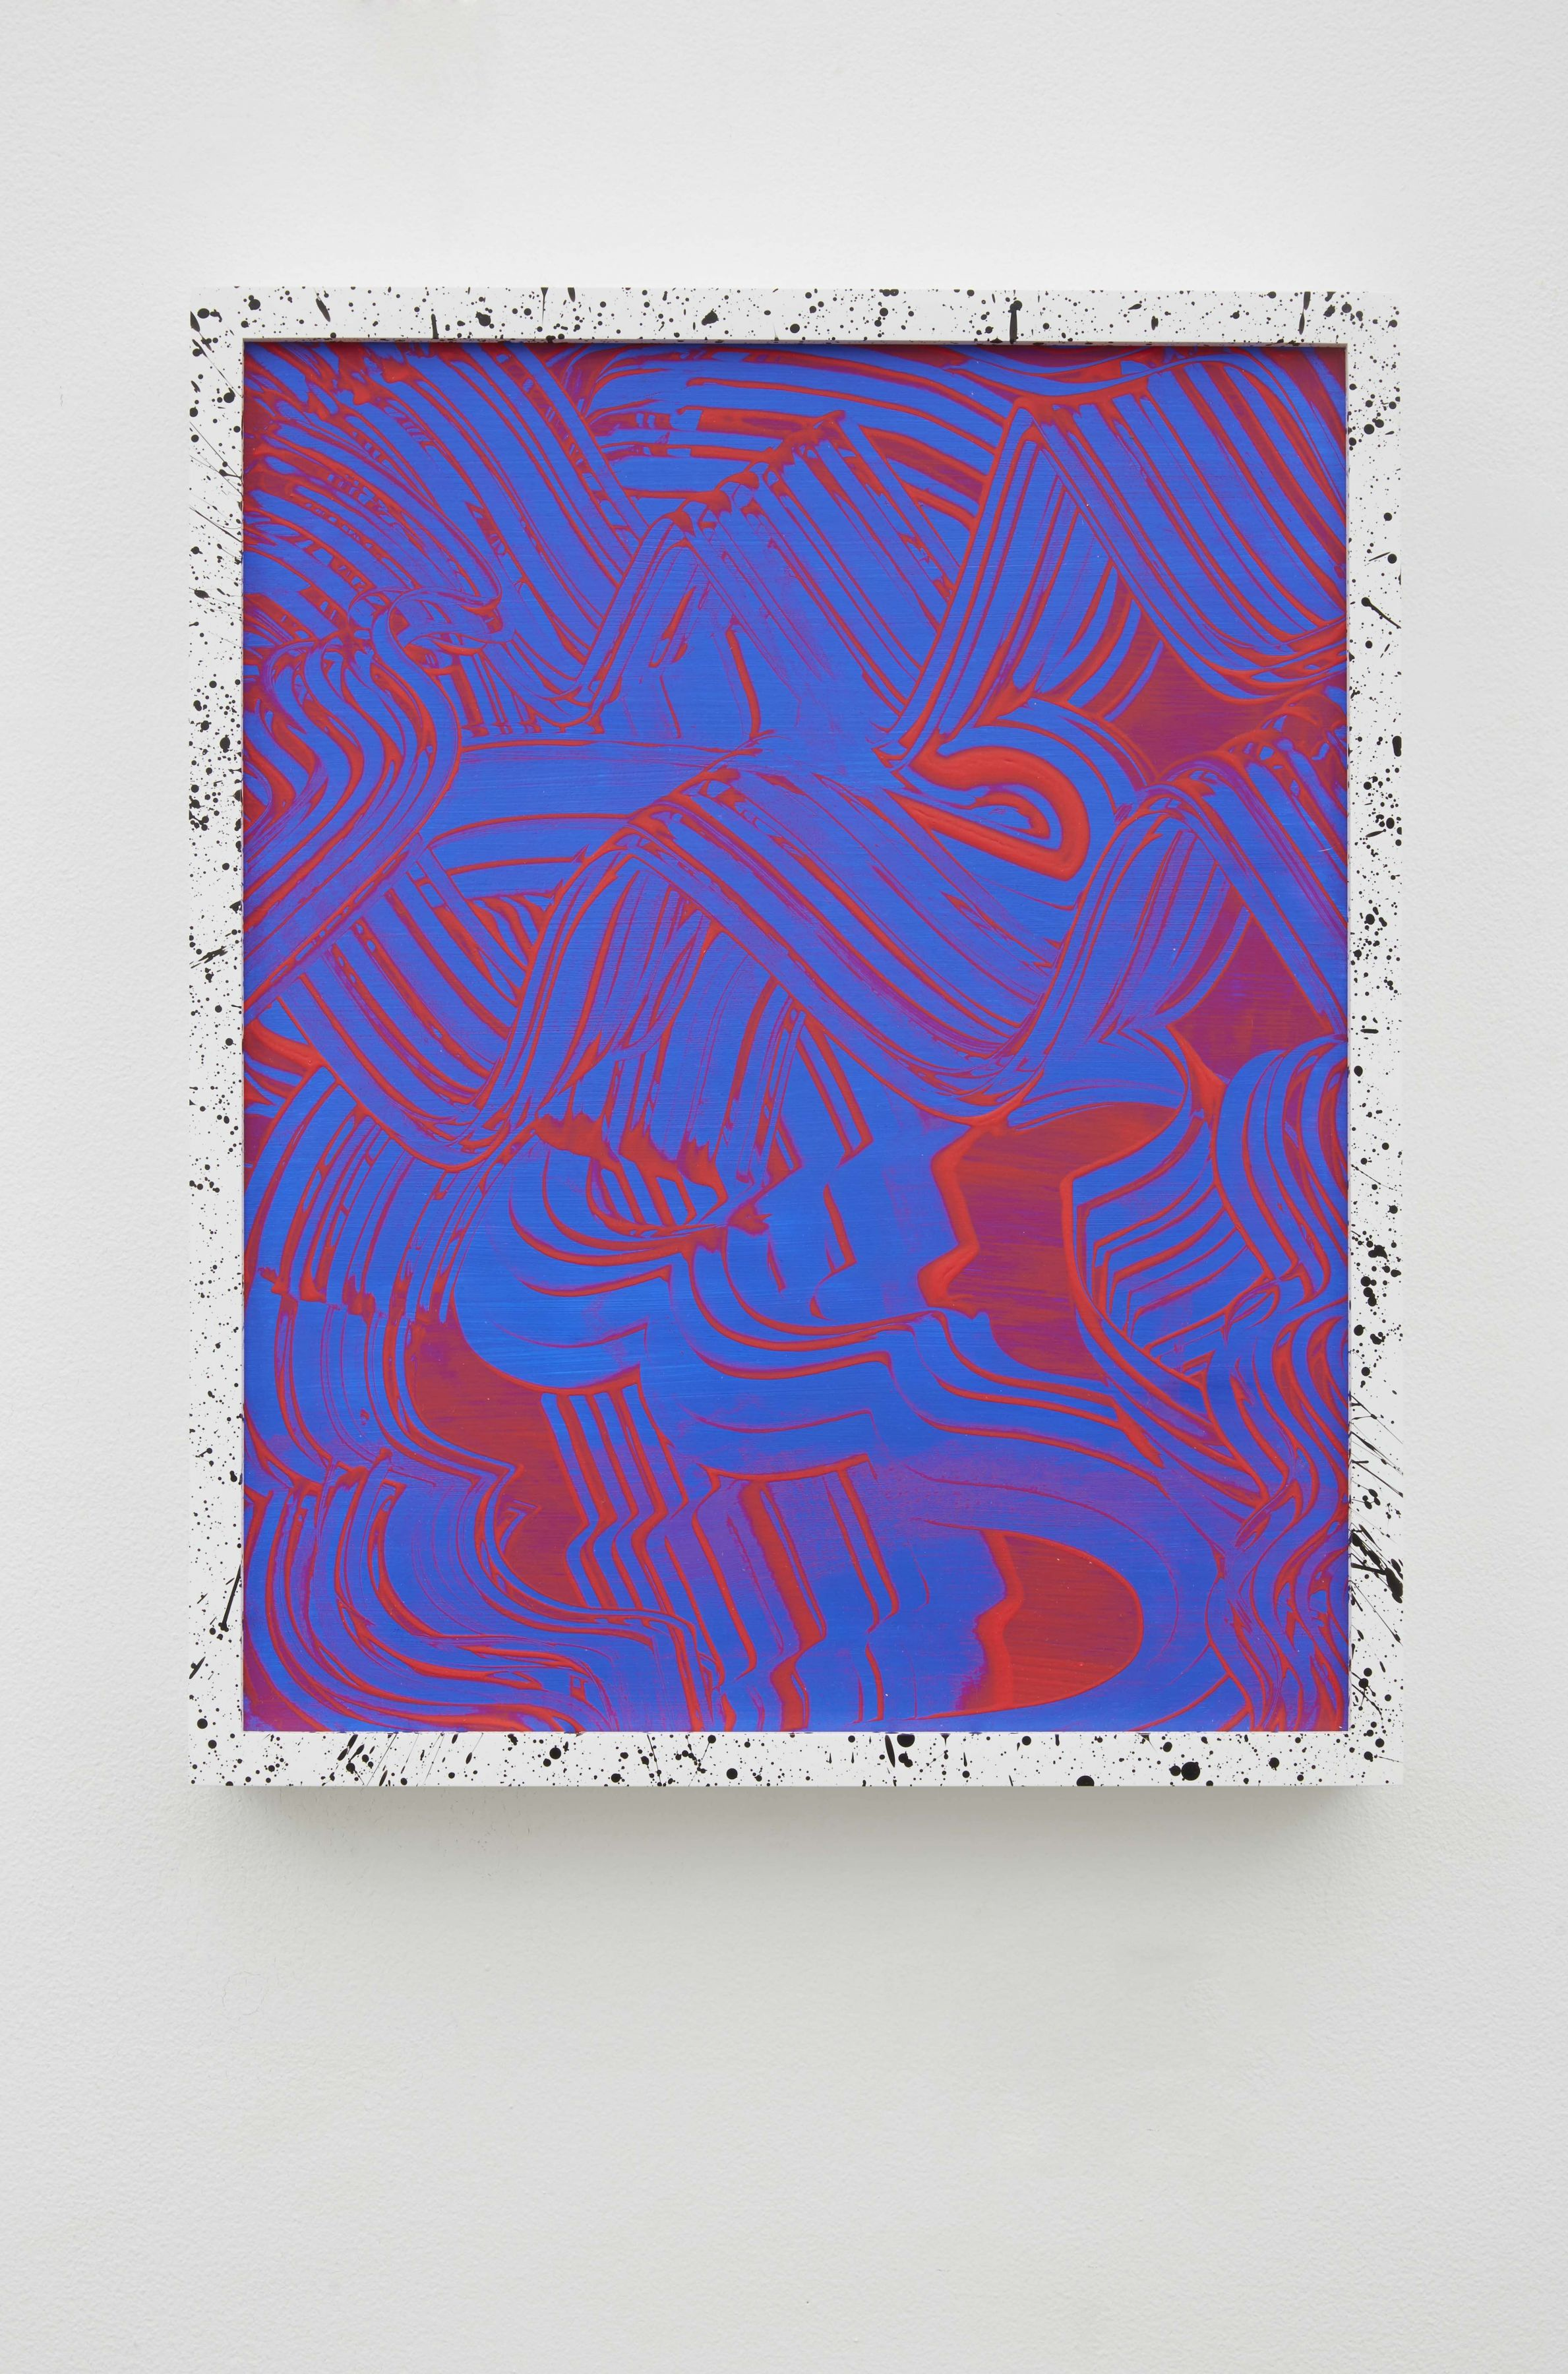 Twizzler, 2014, Acrylic on wooden panel in painted wood frame